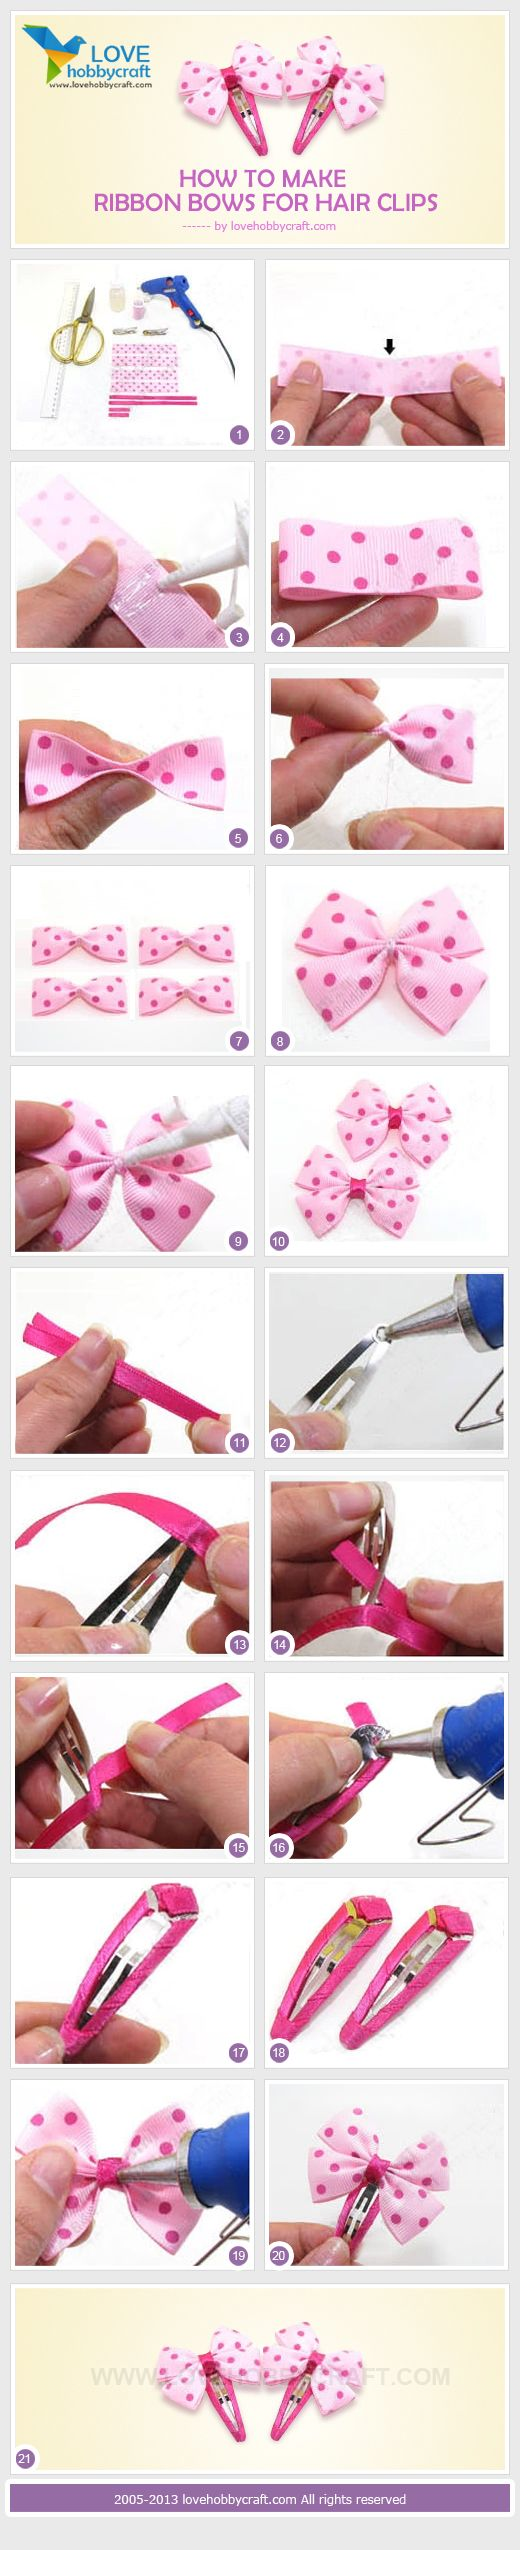 How to make ribbon bows for hair clips...sweet! =) I've been looking for a tutorial for these =)